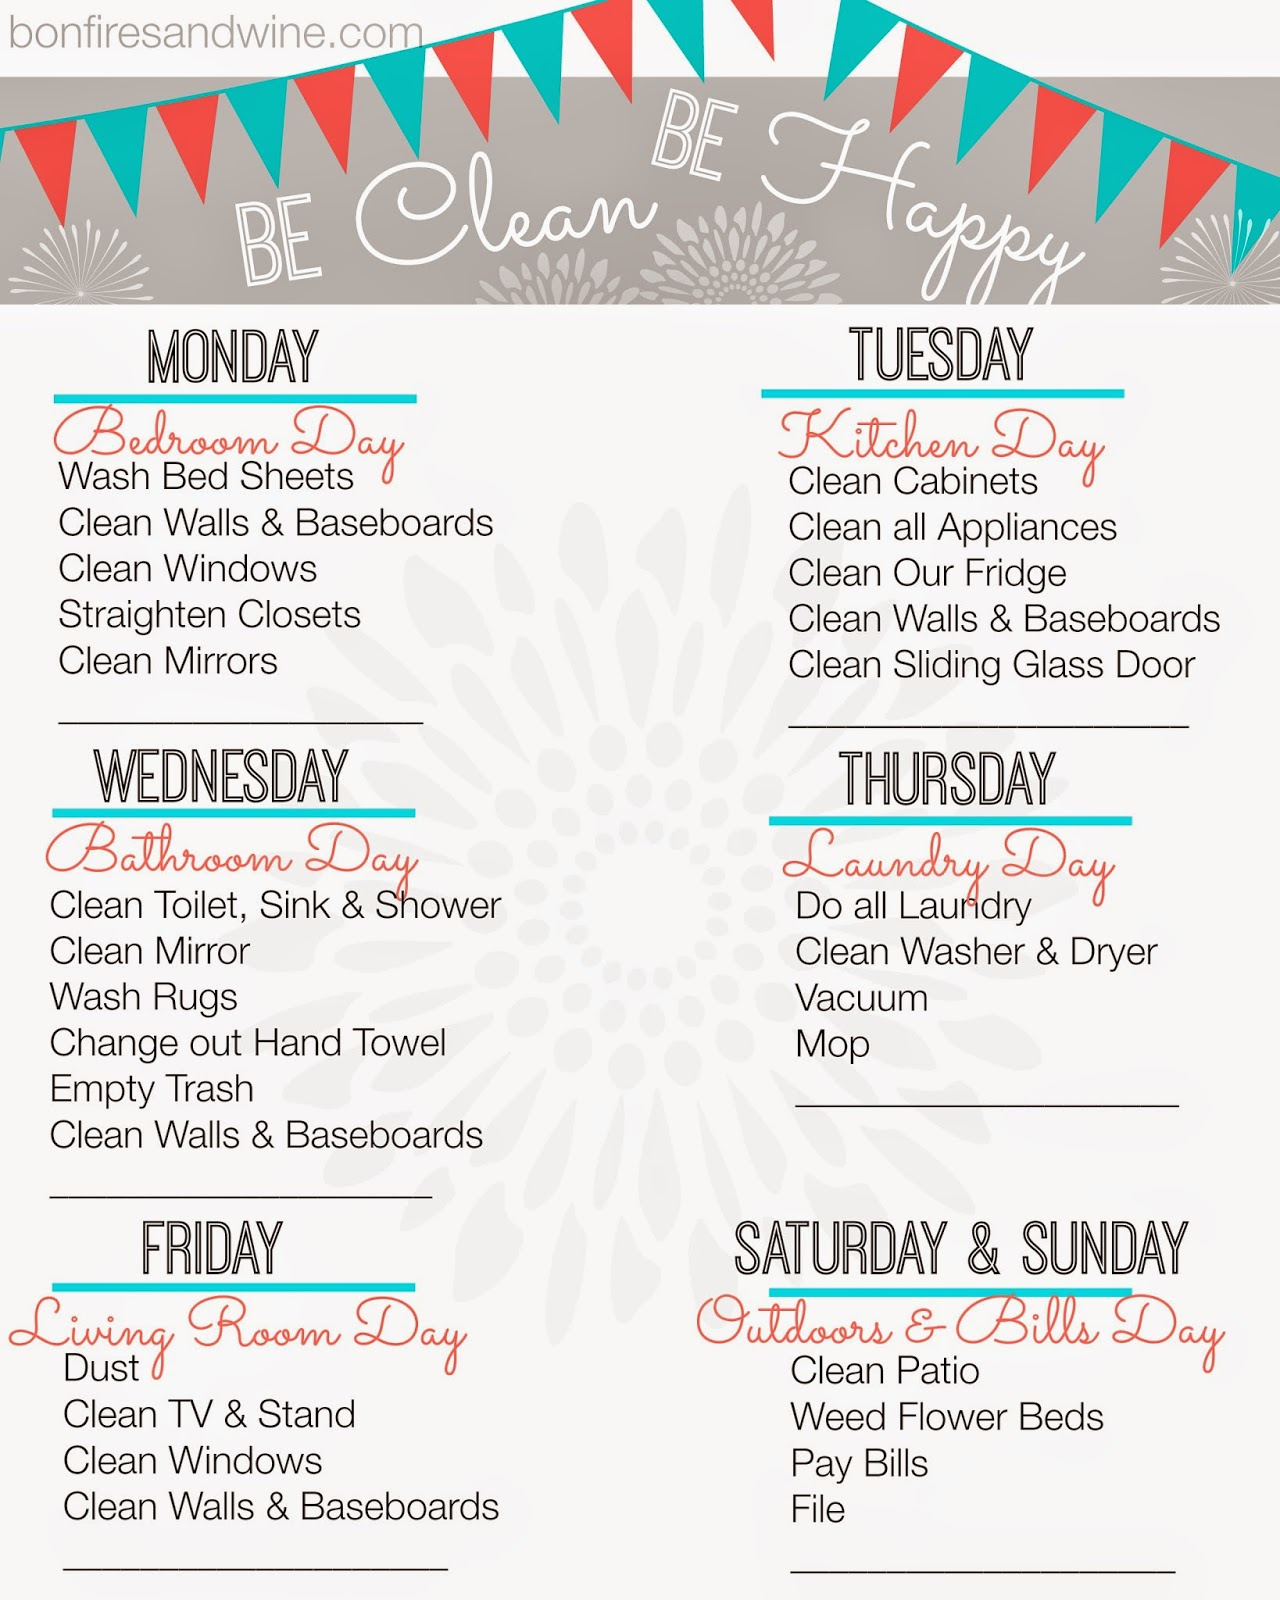 Bonfires And Wine Weekly Cleaning Schedule Free Printable